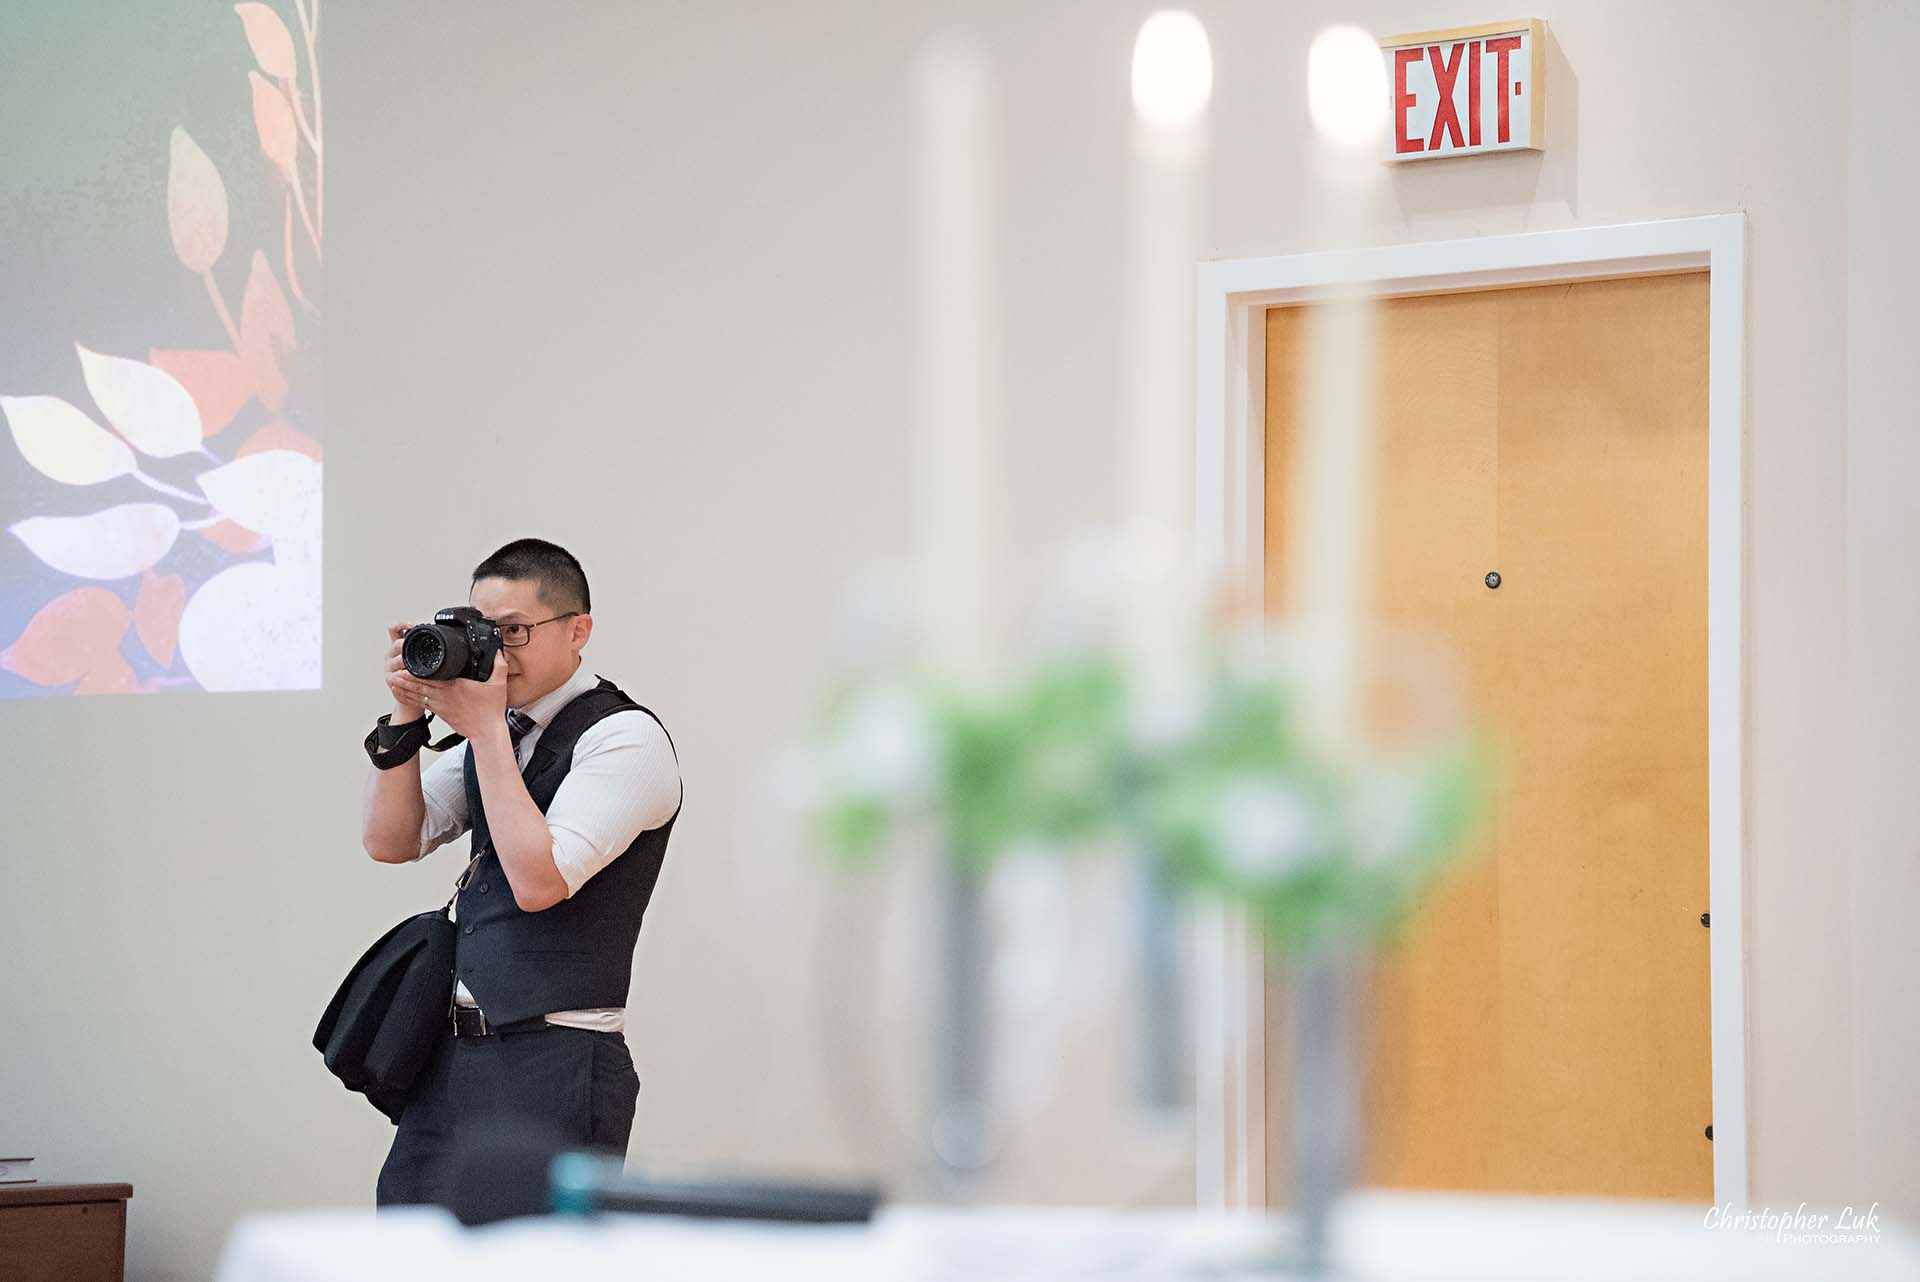 Christopher Luk Toronto Wedding Photographer Behind the Scenes Scarborough Chinese Gospel Church Toronto Ceremony Altar Stage Vows